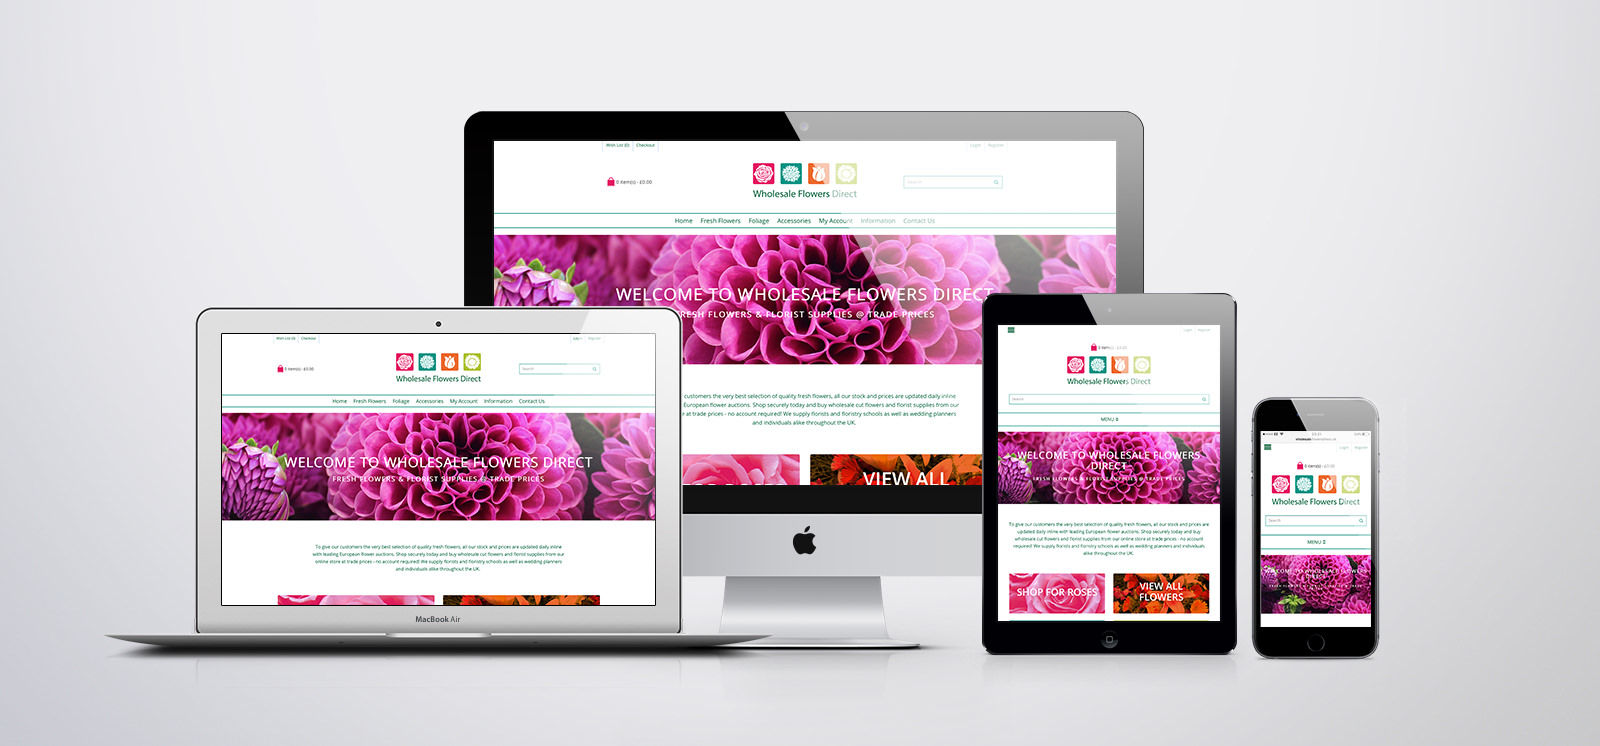 wholesale Flowers Direct website - multiple devices